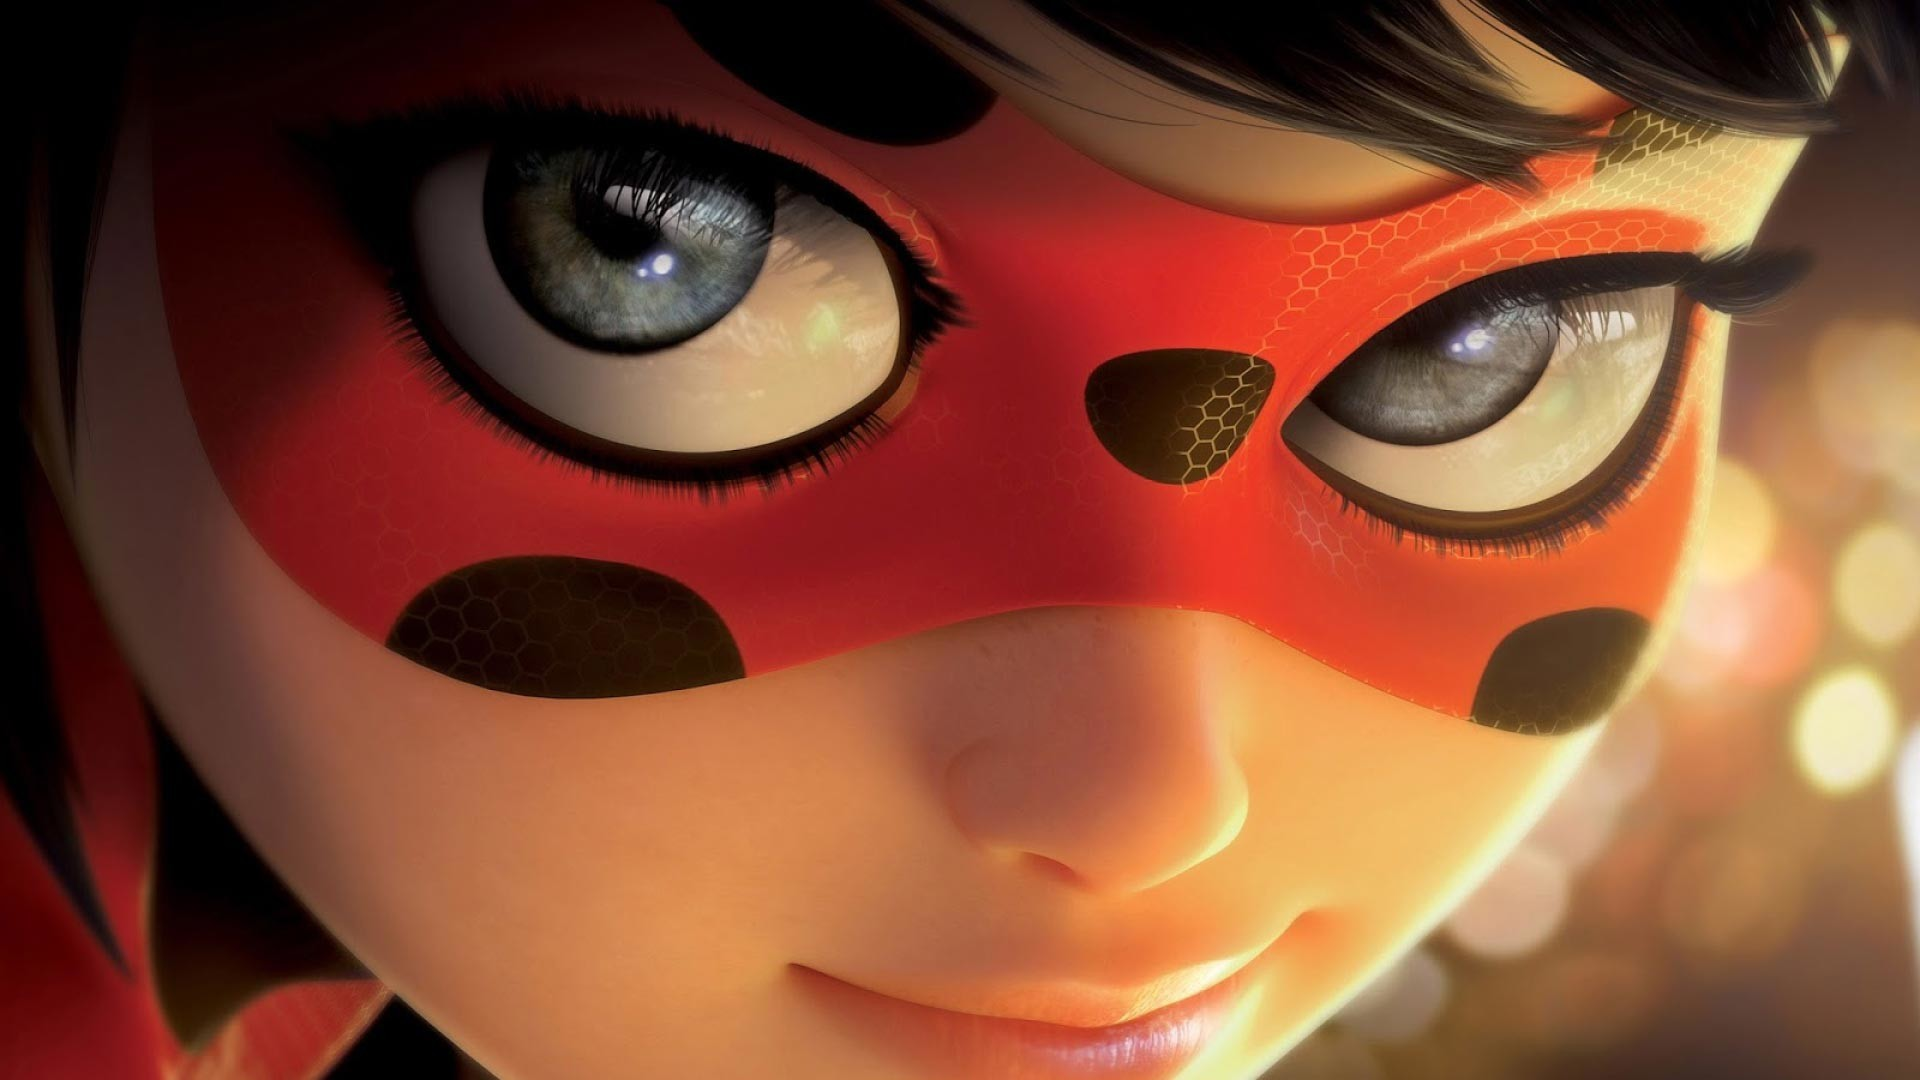 … who transform into the superheroes Ladybug and Cat Noir, respectively.  As well as some great fan art of the show to complete this theme.